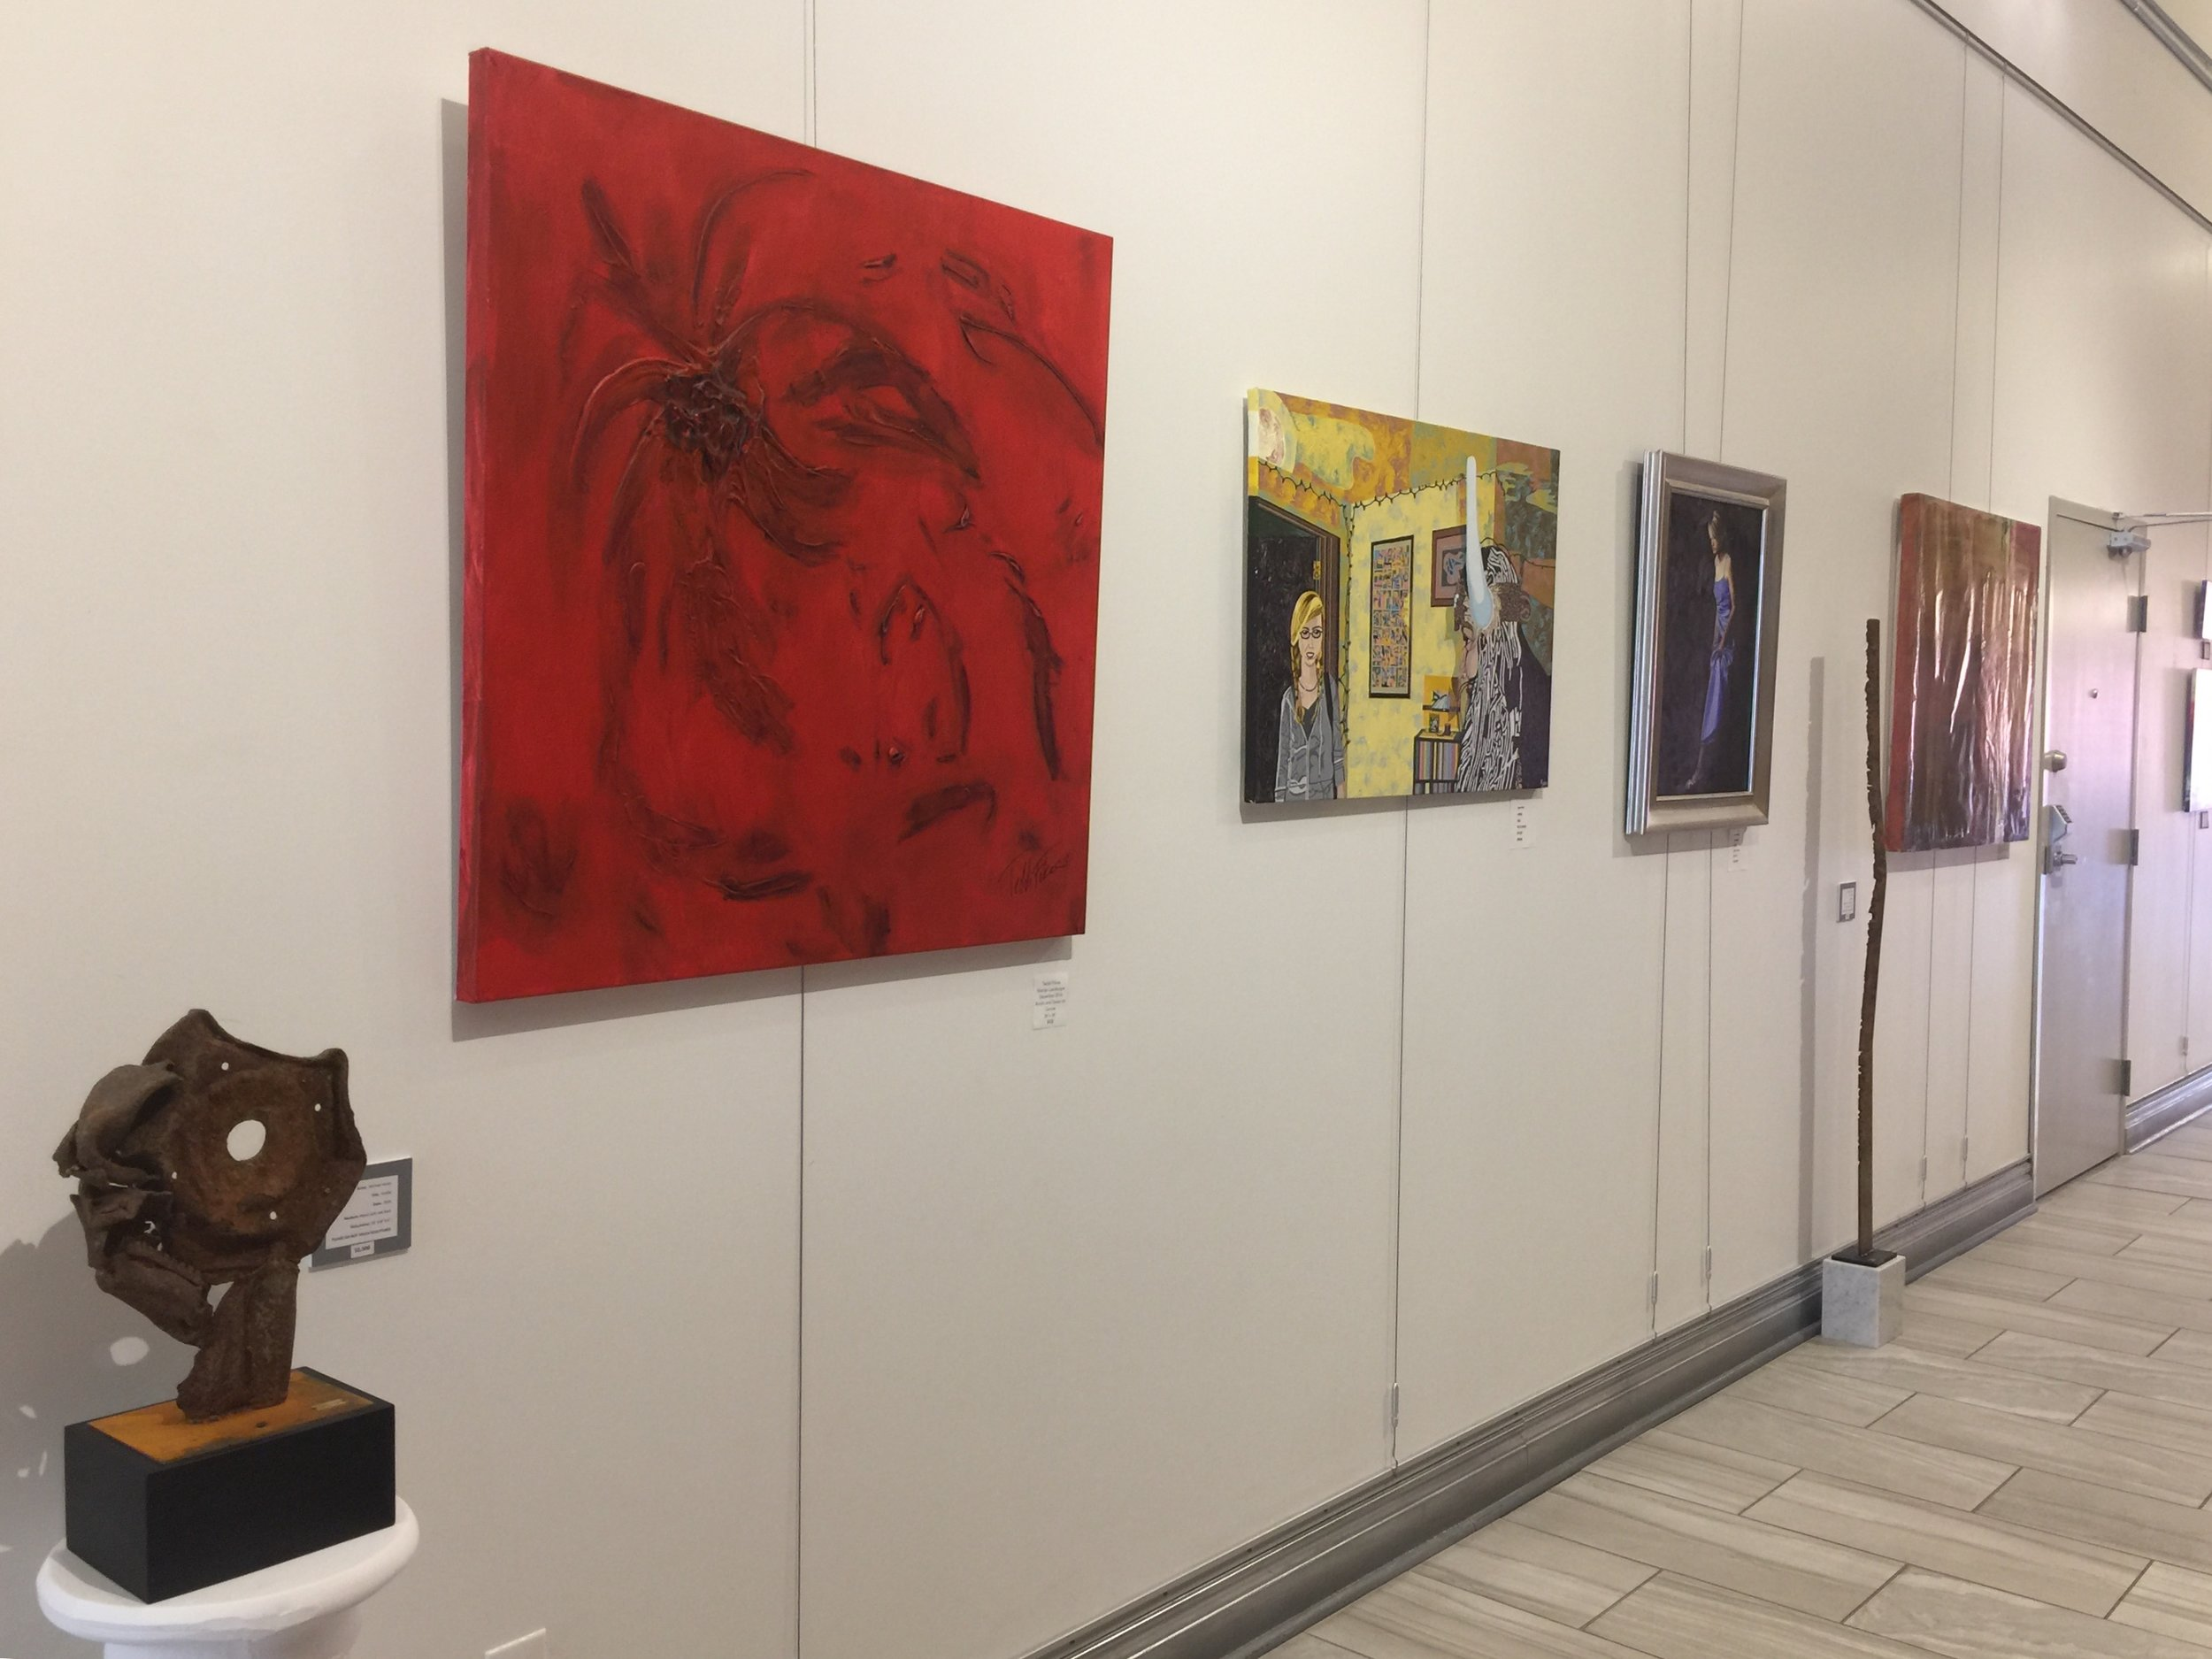 Sculpture by Michael Hanes, painting by Teddi Fokas and Ryan Pack